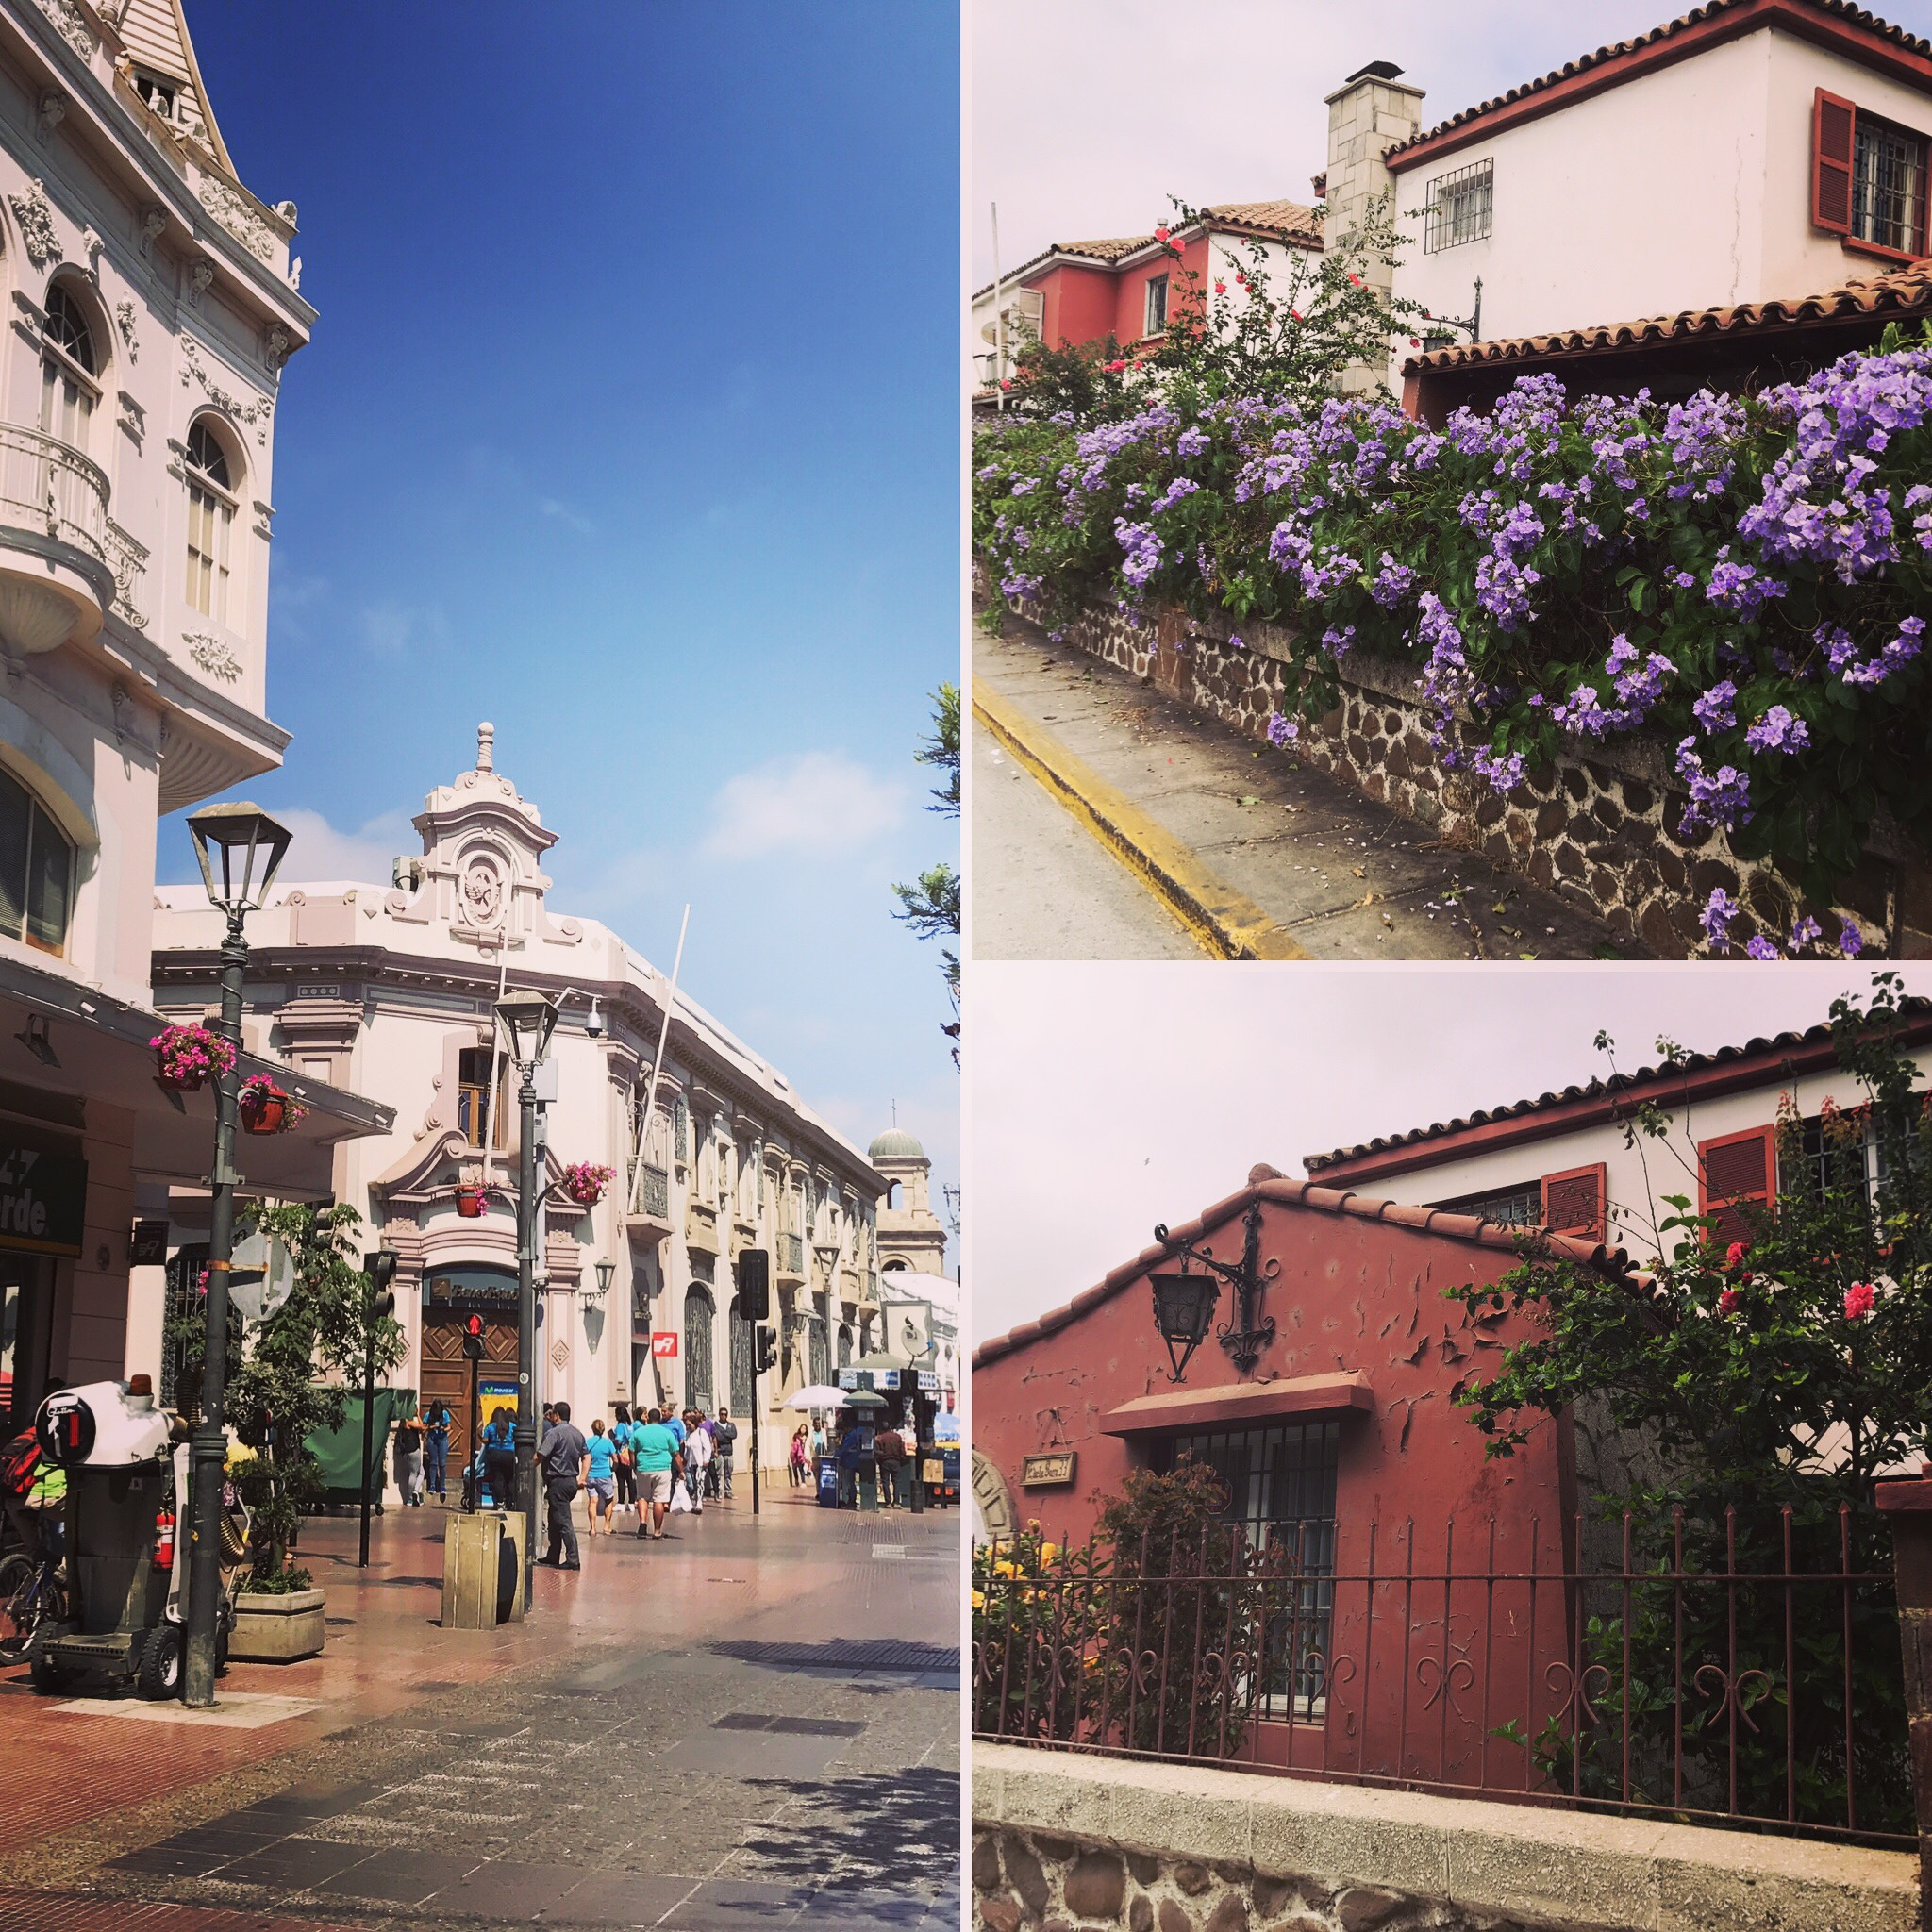 I noticed that La Serena has a lot of flowers: roses, hibiscus, and others I couldn't recognize.